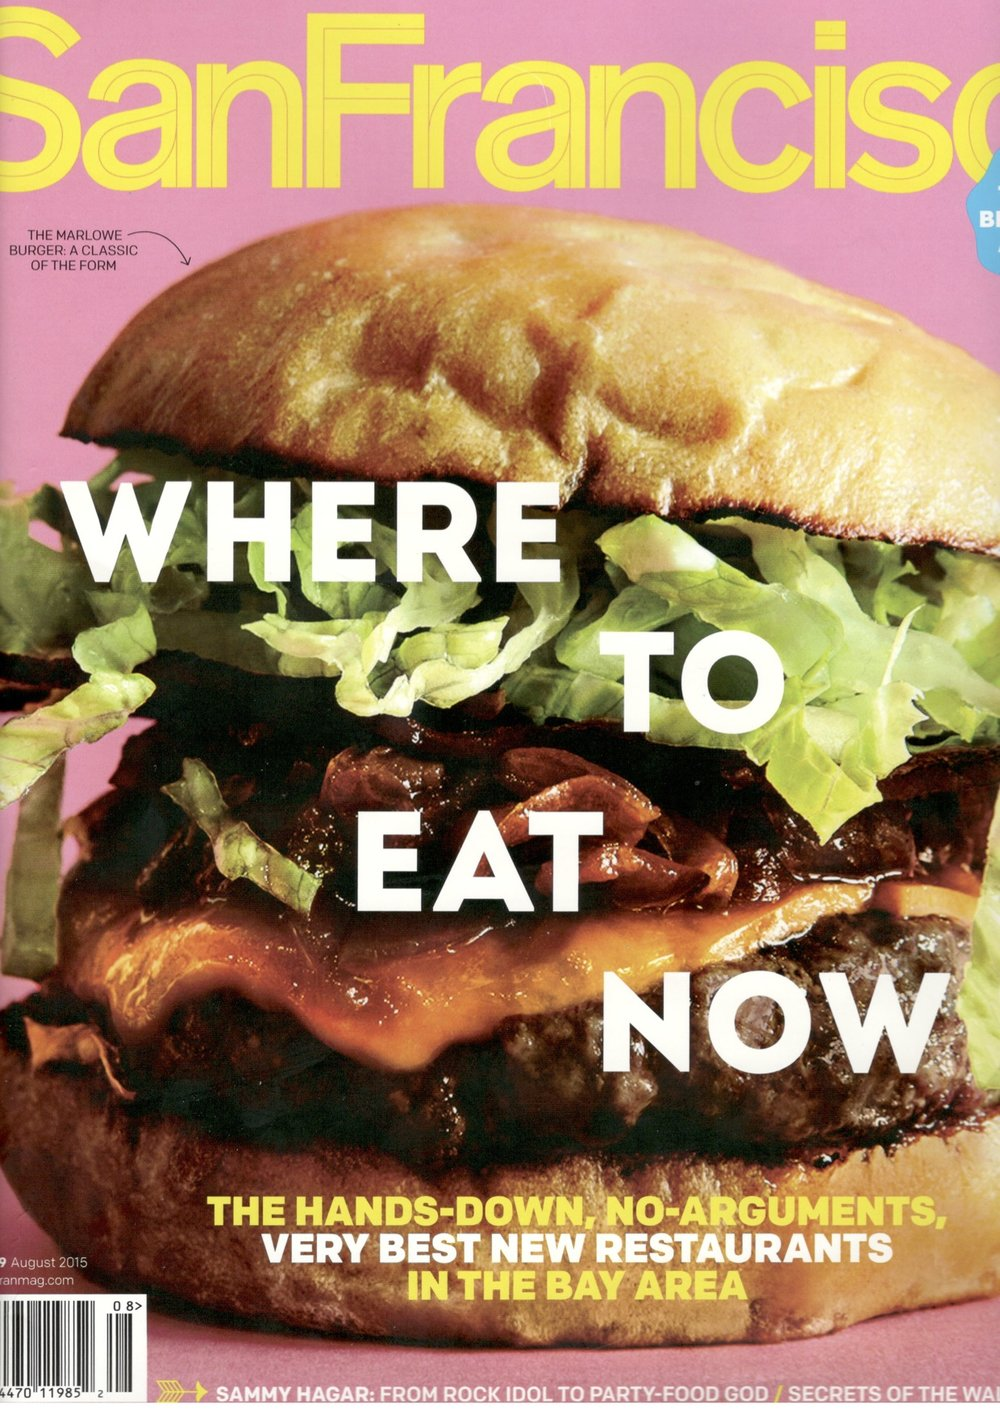 Marlowe - Burger on cover of SF Magazine August 2015.jpg